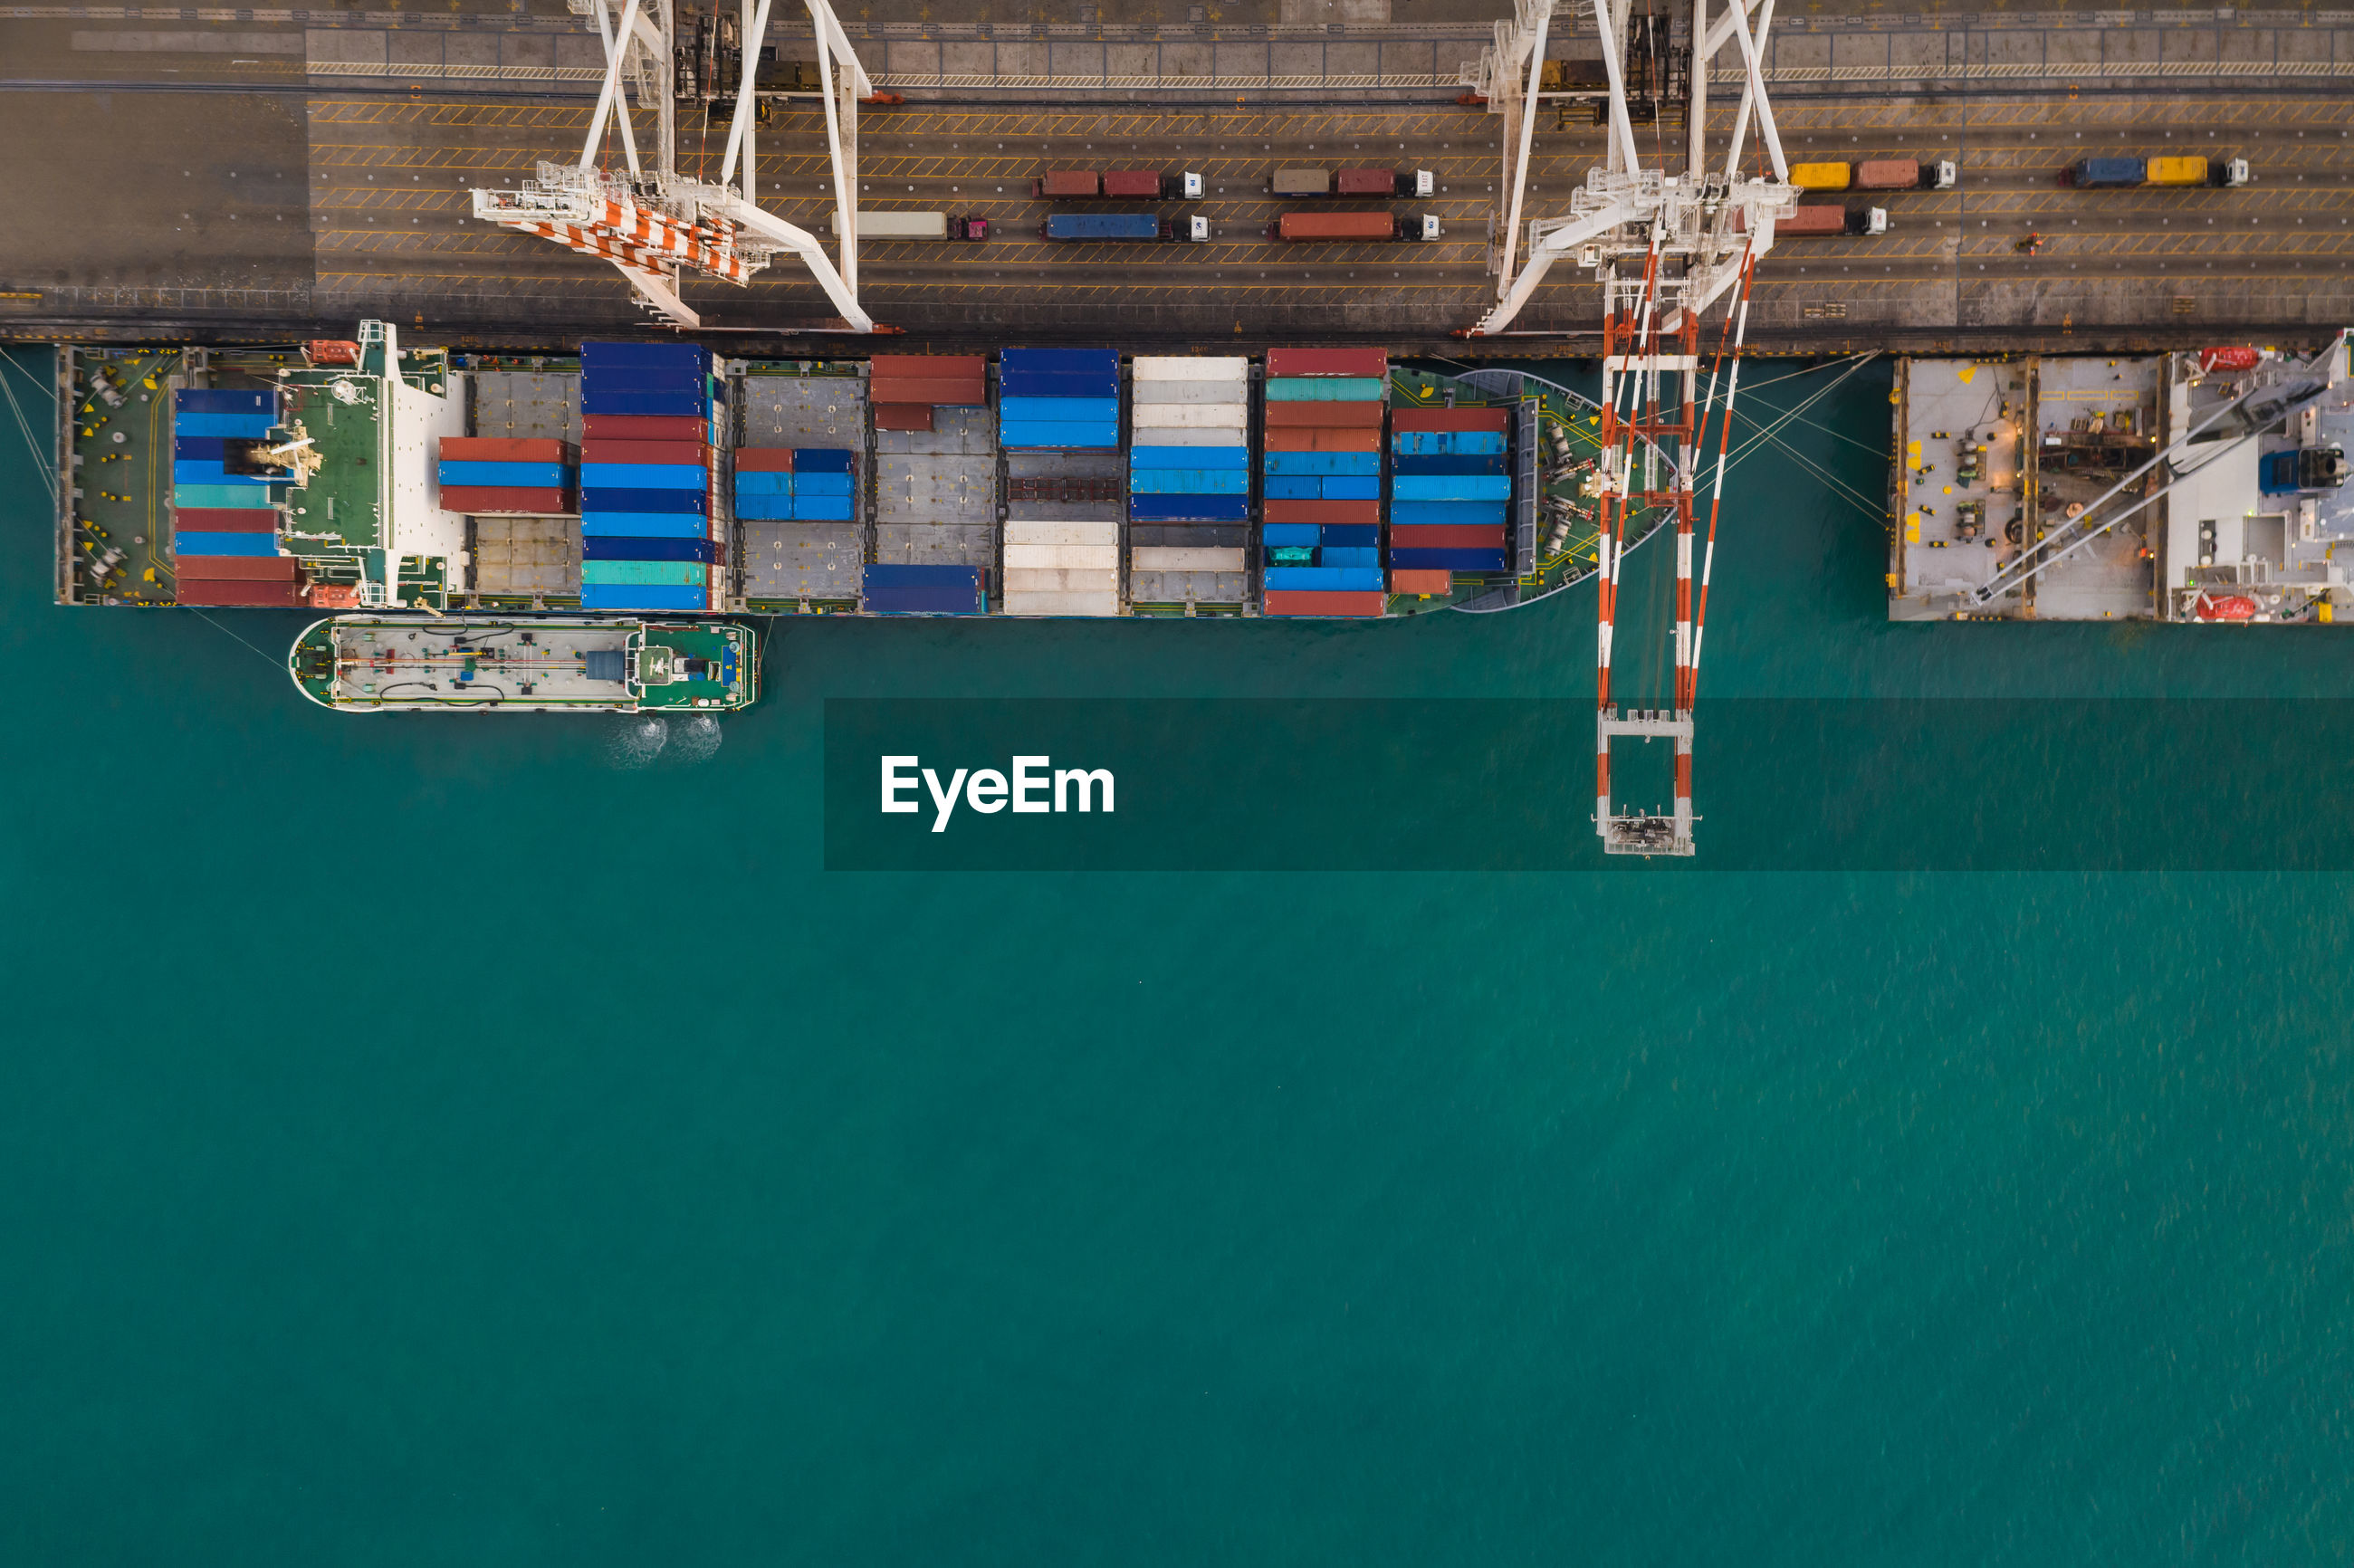 High angle view of container ship at harbor